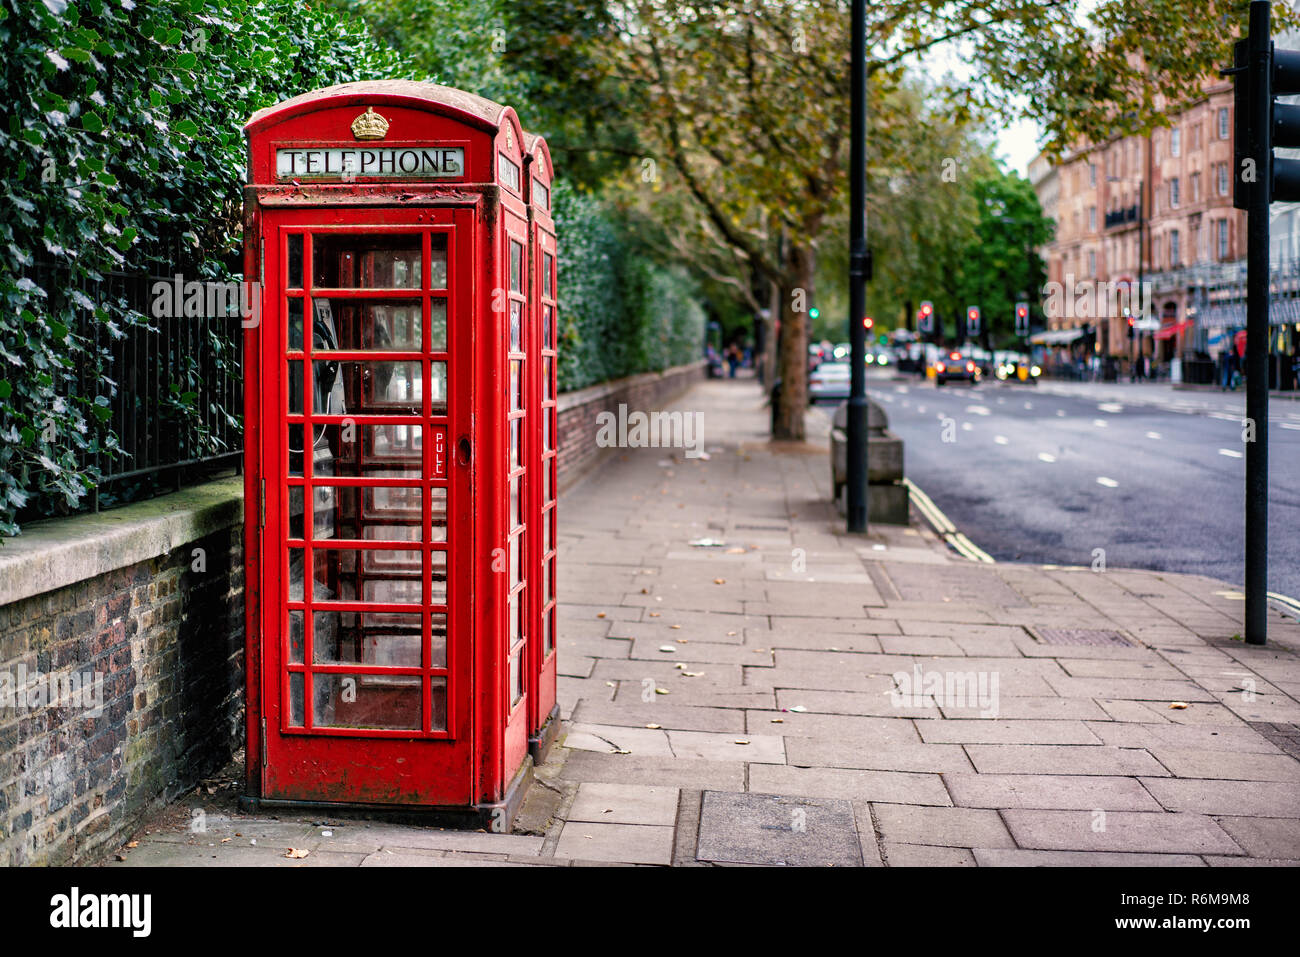 Traditional Red Telephone Box in London city, England - Stock Image